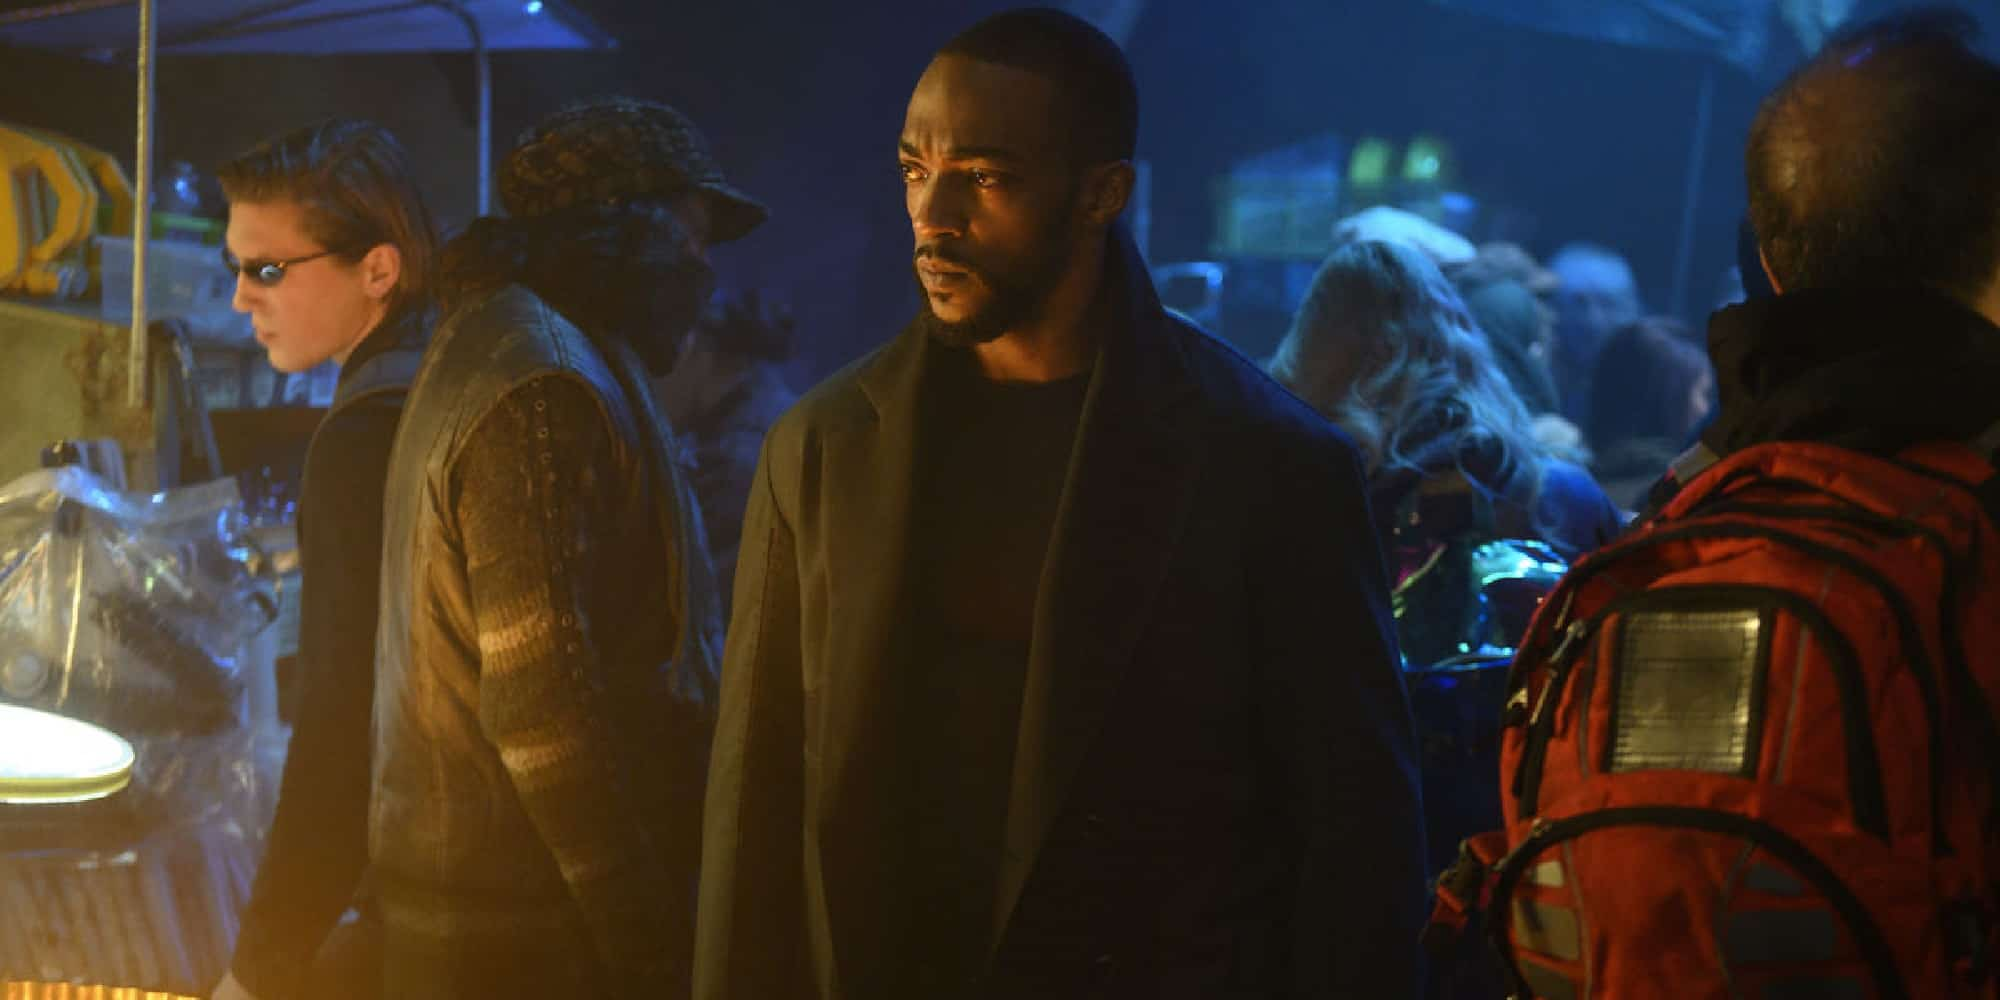 Altered Carbon Season 2 review Anthony Mackie Takeshi Kovacs, Anthony Mackie Marvel Studios Diversity Hiring